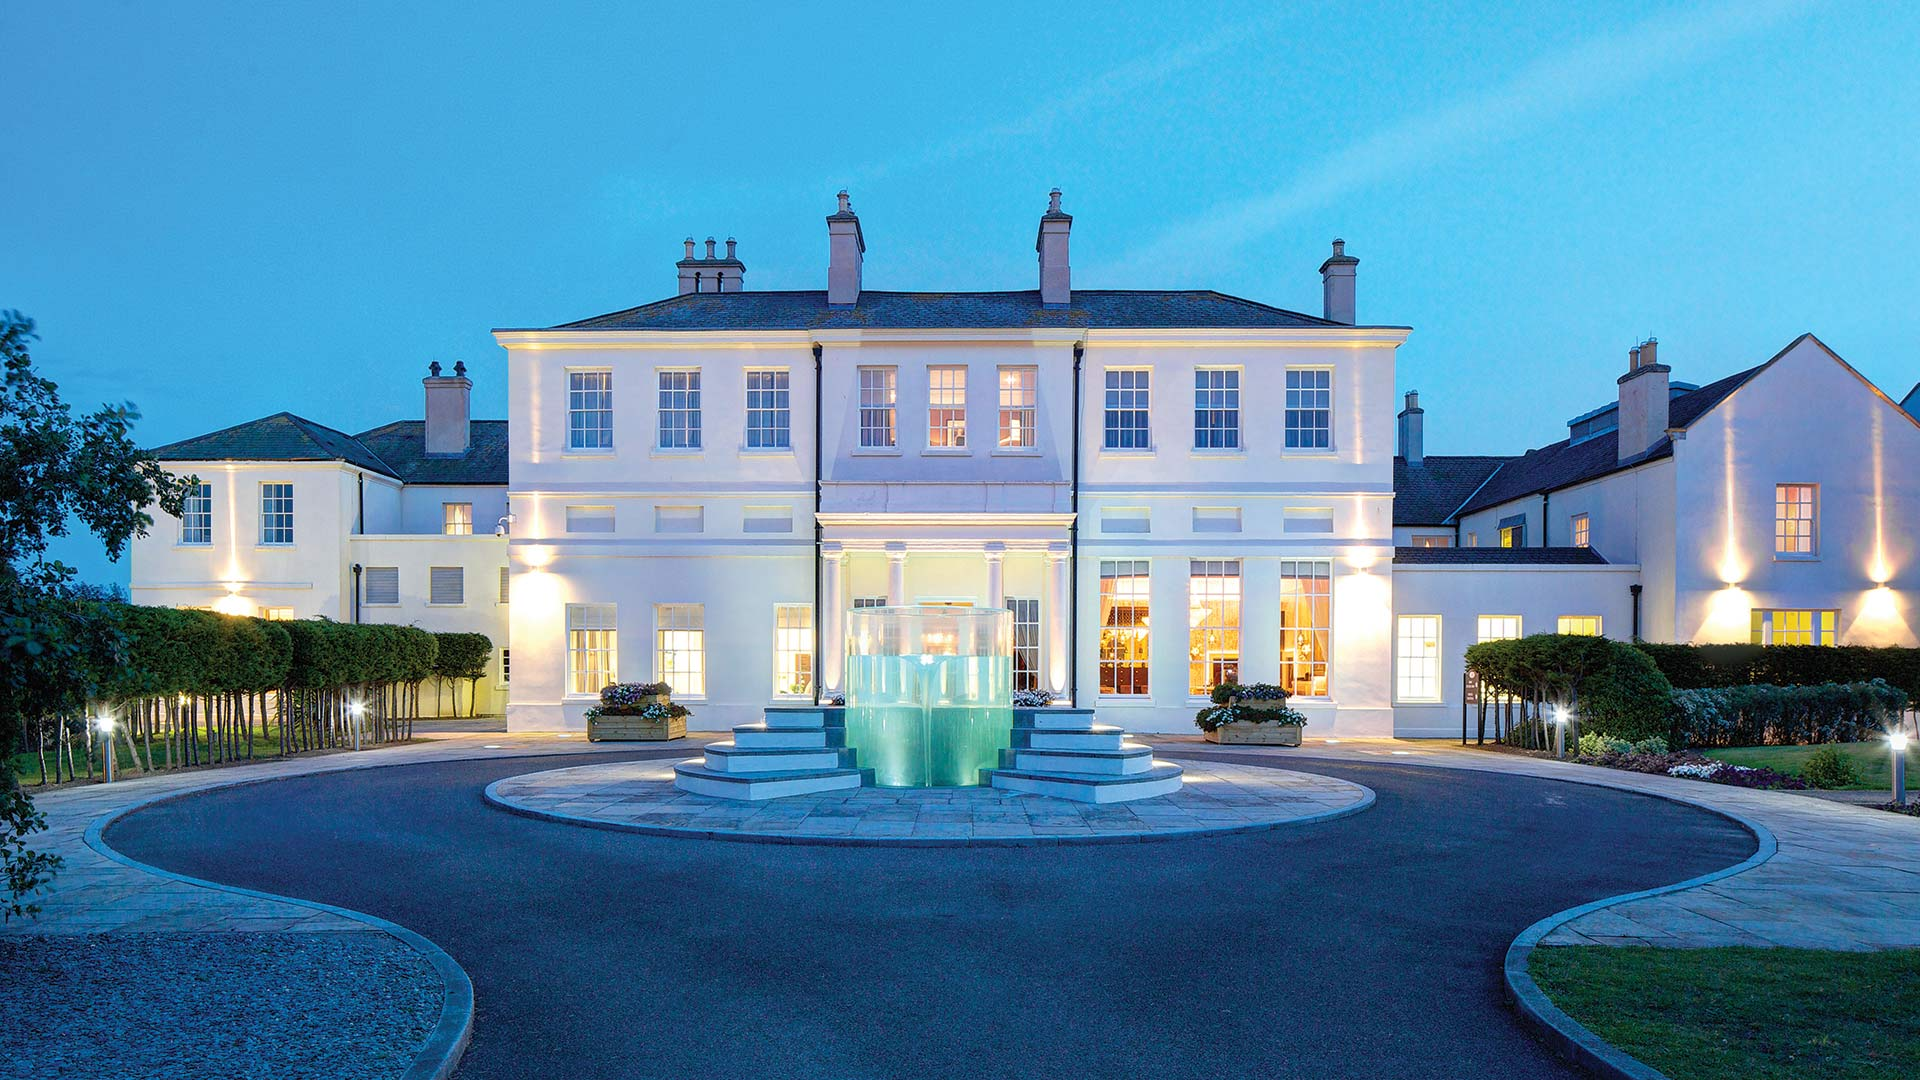 seaham hall hotels hotel spa luxury britain durham pride hitched prideofbritainhotels